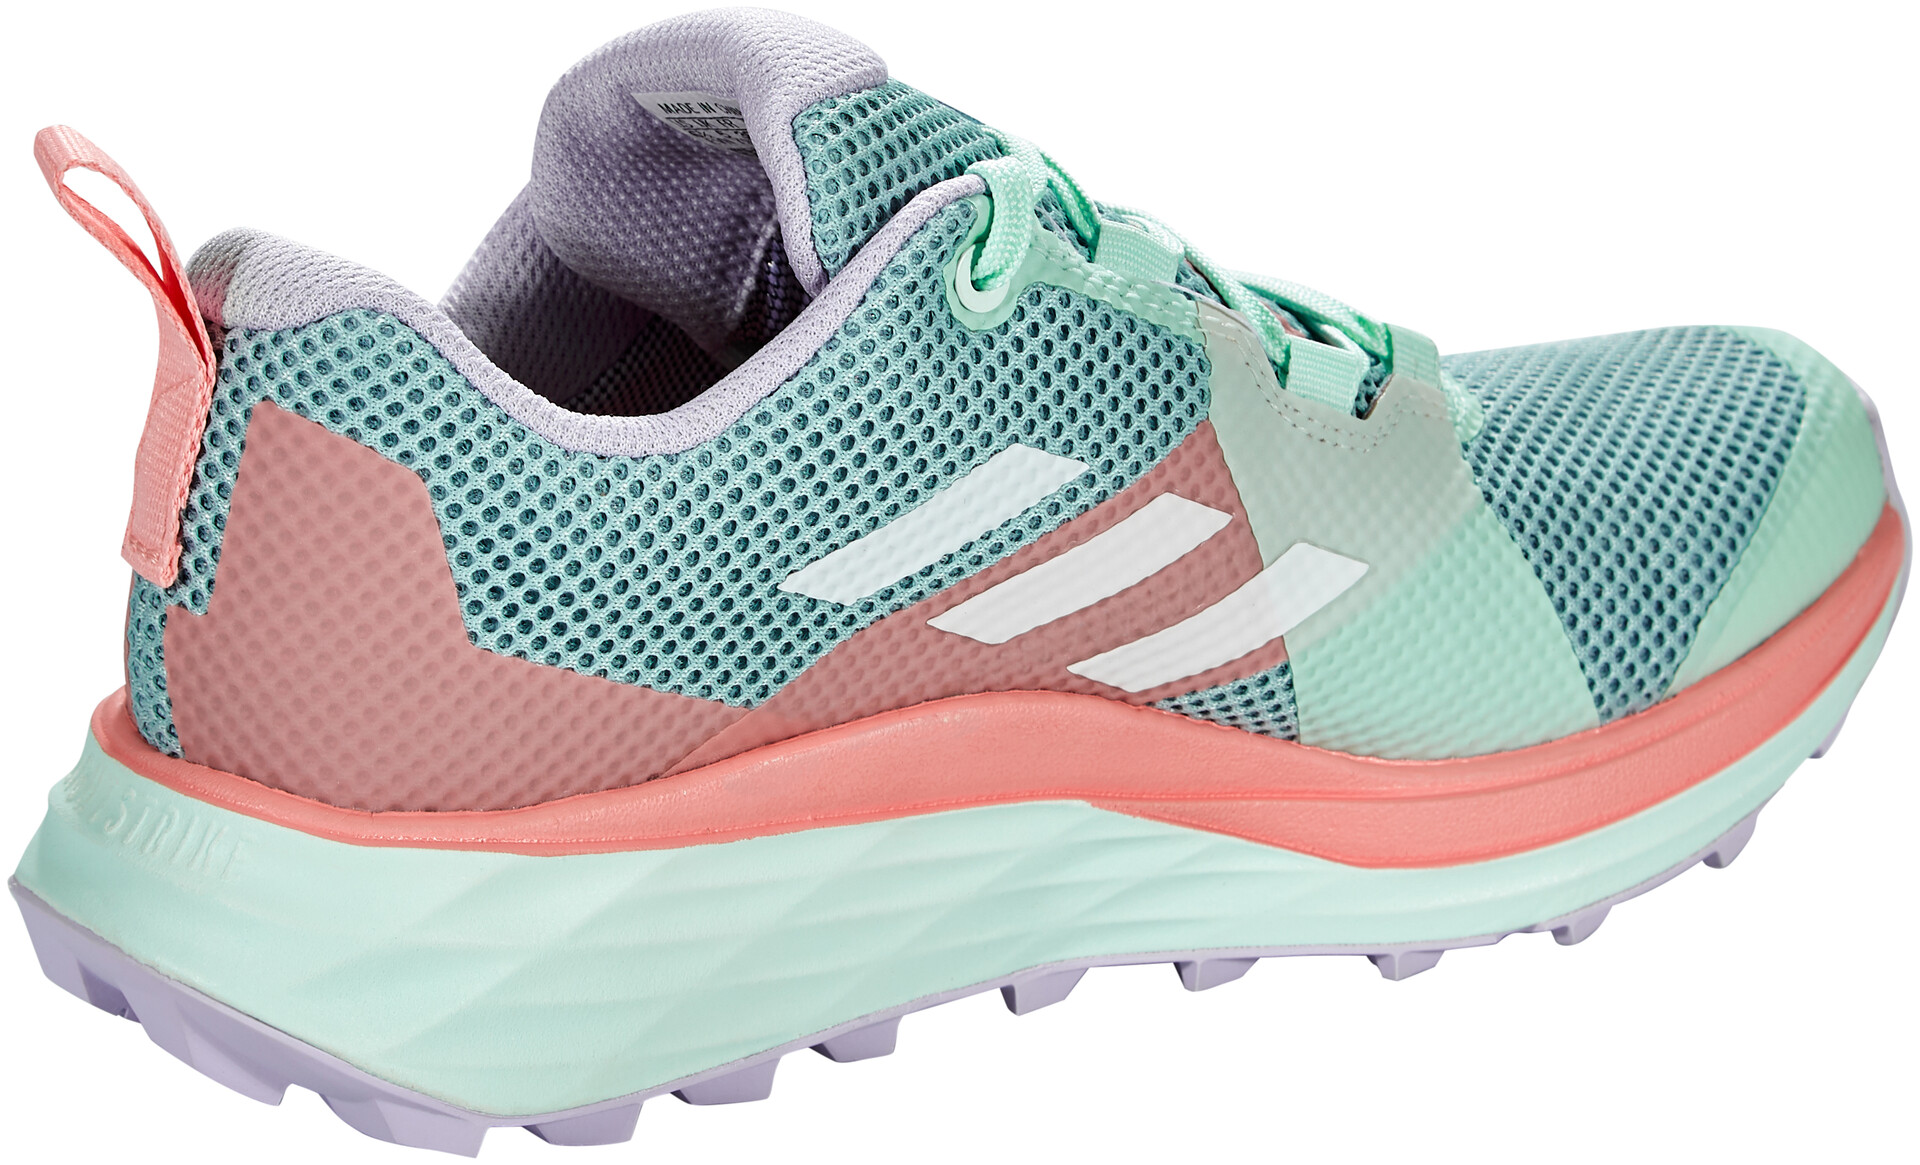 adidas TERREX Two Gore Tex Chaussures de trail Femme, ash greyfootwear whiteglory pink